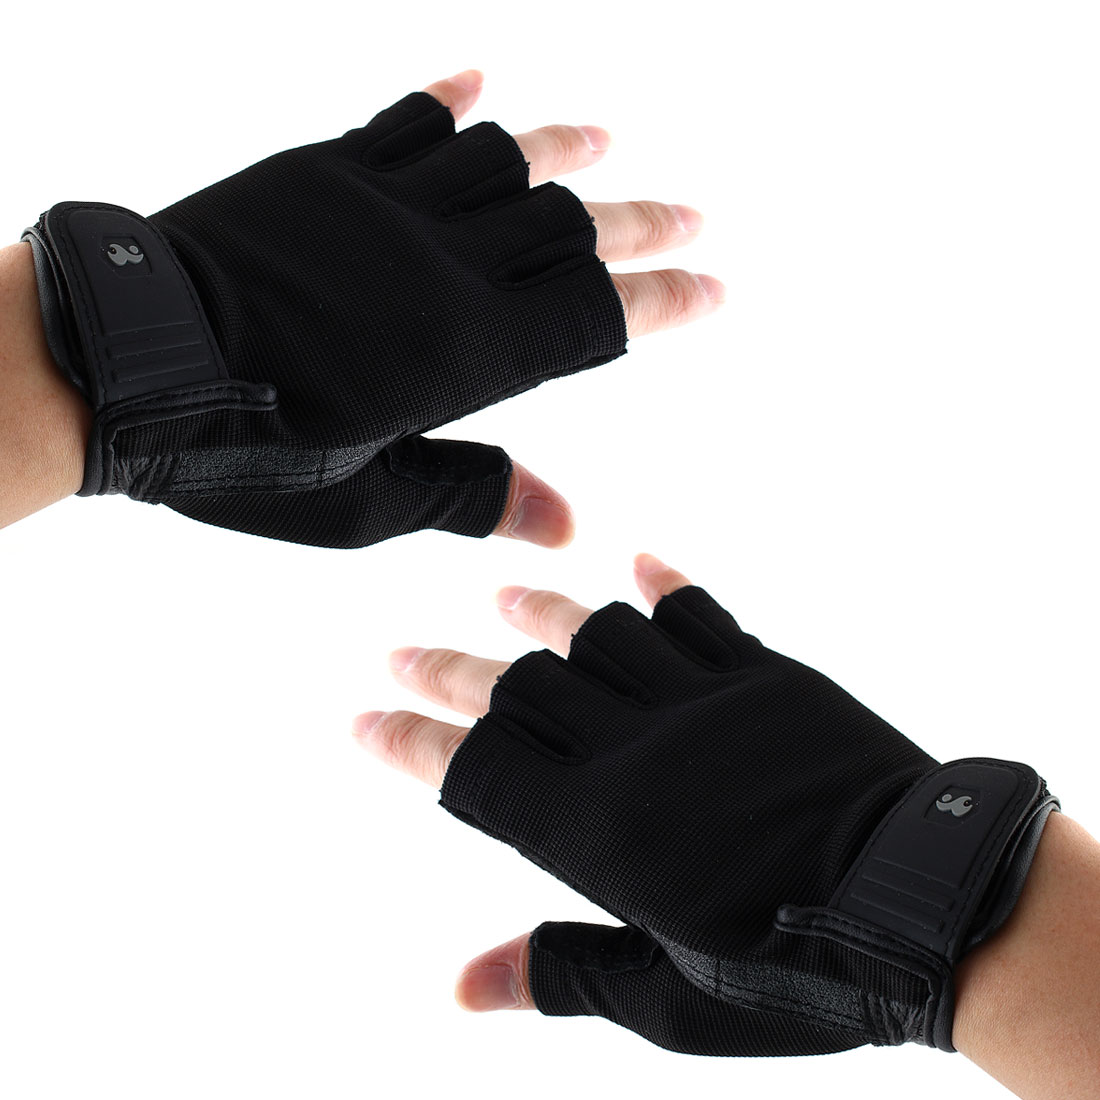 Boodun Authorized Unisex Sports Weight Lifting Gym Workout Fitness Half Finger Gloves Size L Pair